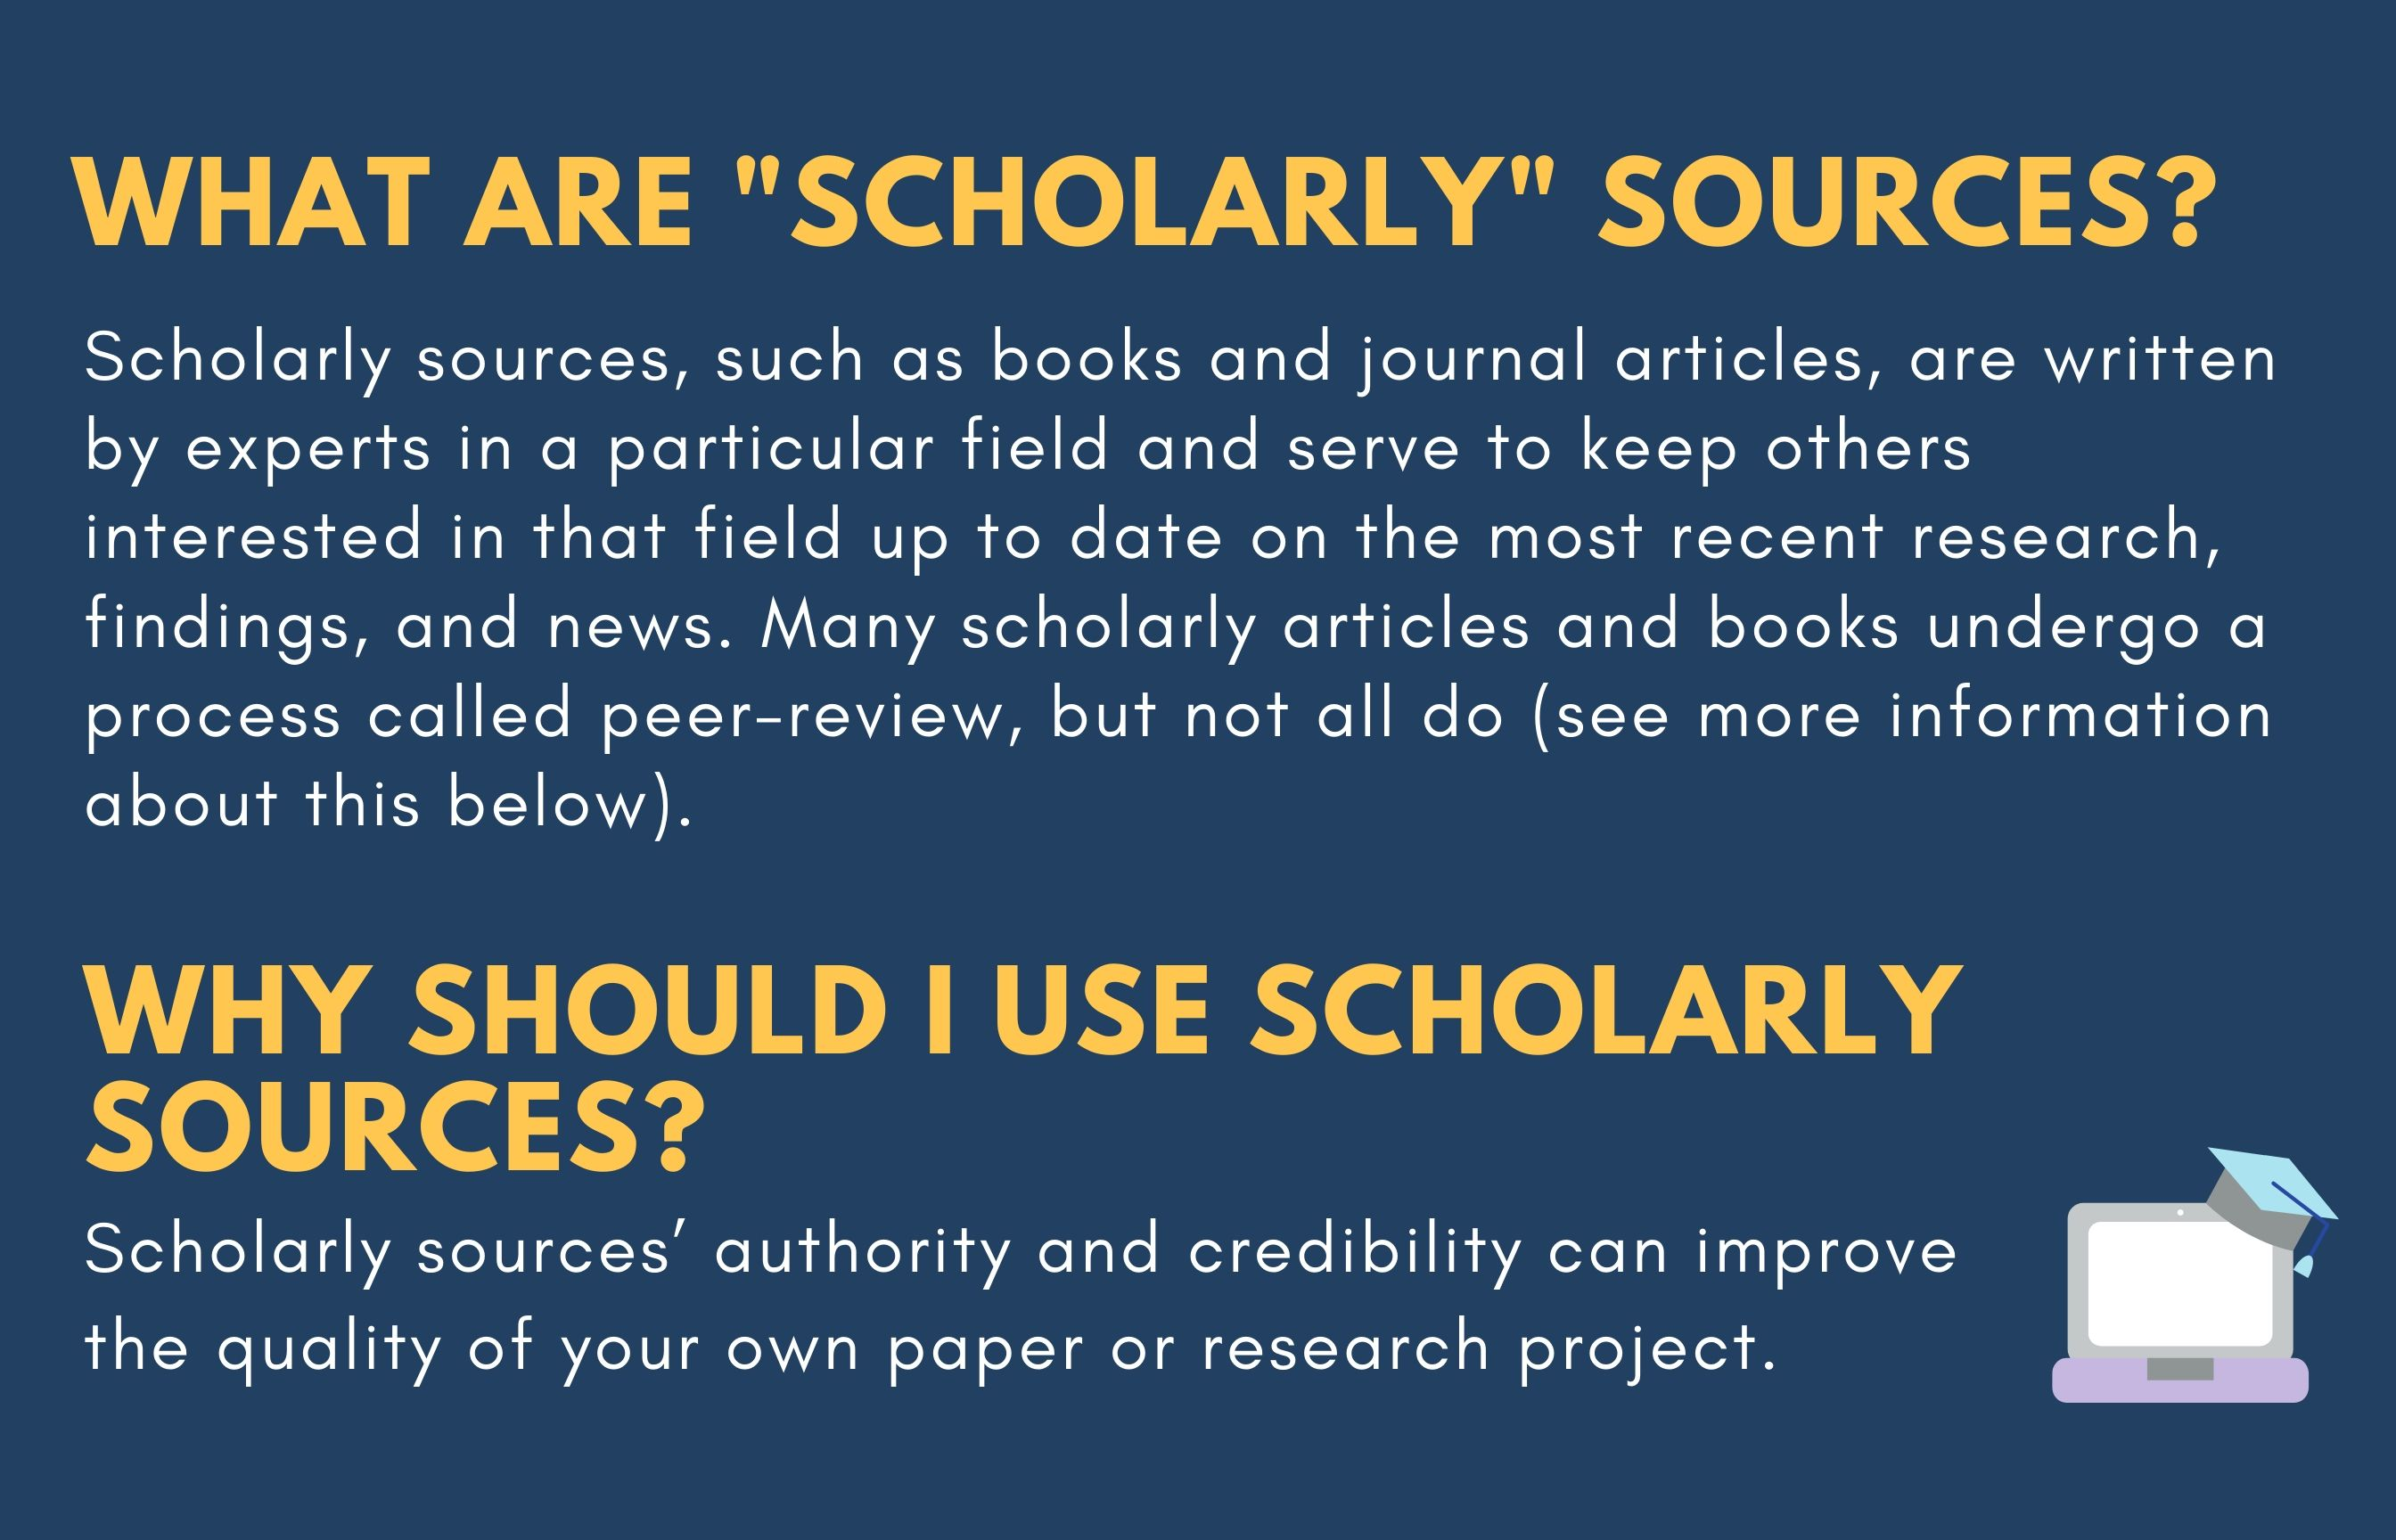 "What are ""scholarly"" sources? Scholarly sources, such as books and journal articles, are written by experts in a particular field and serve to keep others interested in that field up to date on the most recent research, findings, and news. Many scholarly articles and books undergo a process called peer-review, but not all do (see more information about this below). Why should I use scholarly sources? Scholarly sources' authorty and credibility can improve the quality of your own paper or research project."